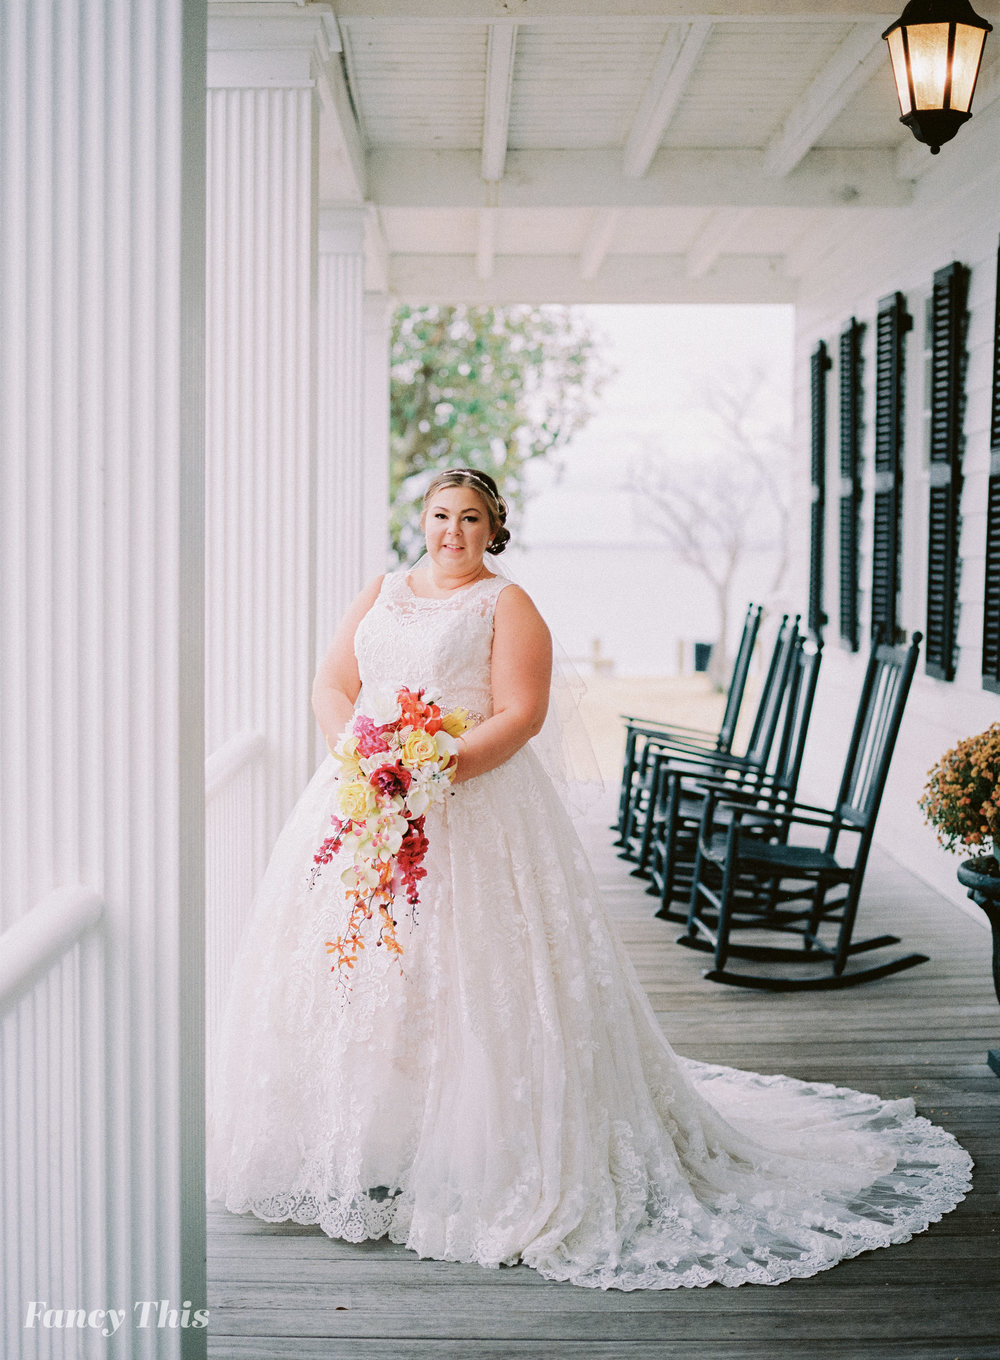 edentonwedding_edentonbridalsession_fancythis-122.jpg